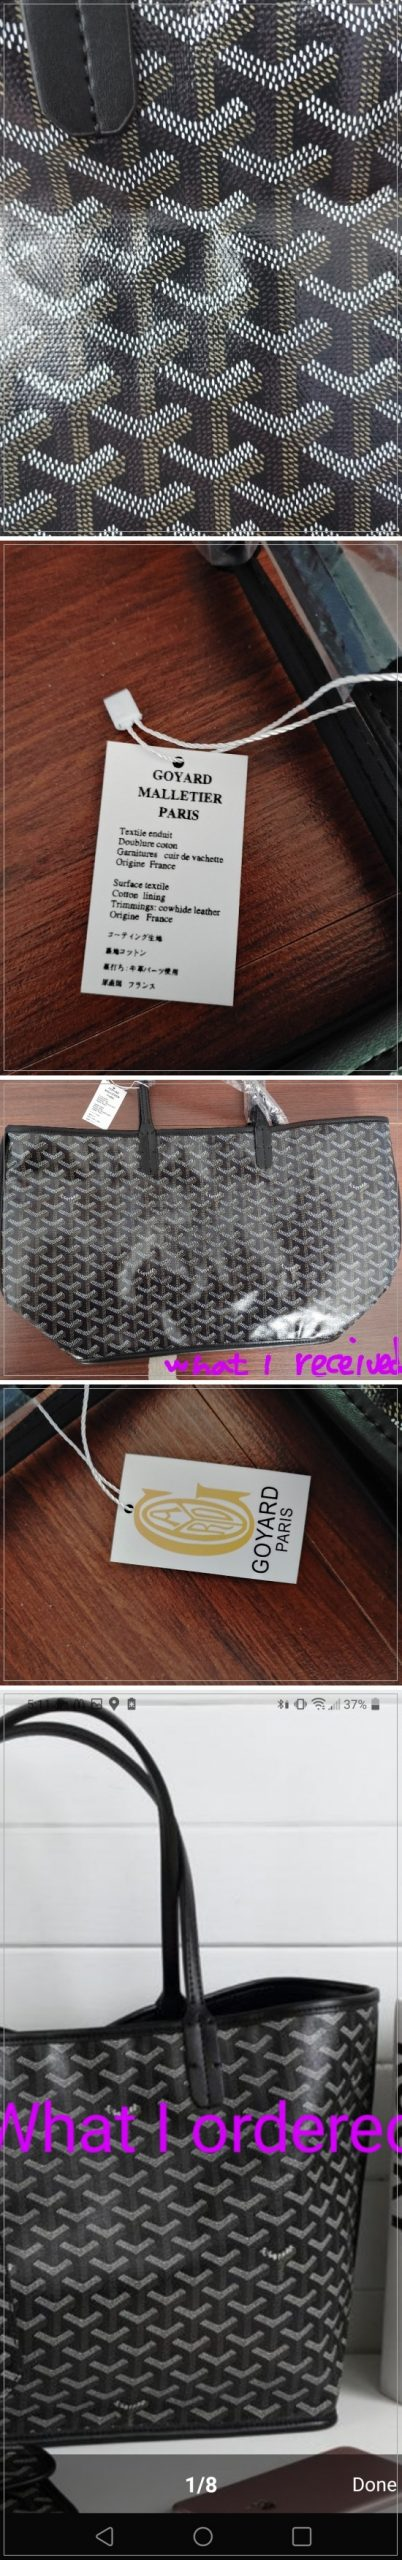 they sold wrong color bag and they still don't refund me(and it is illegal immitation bag)